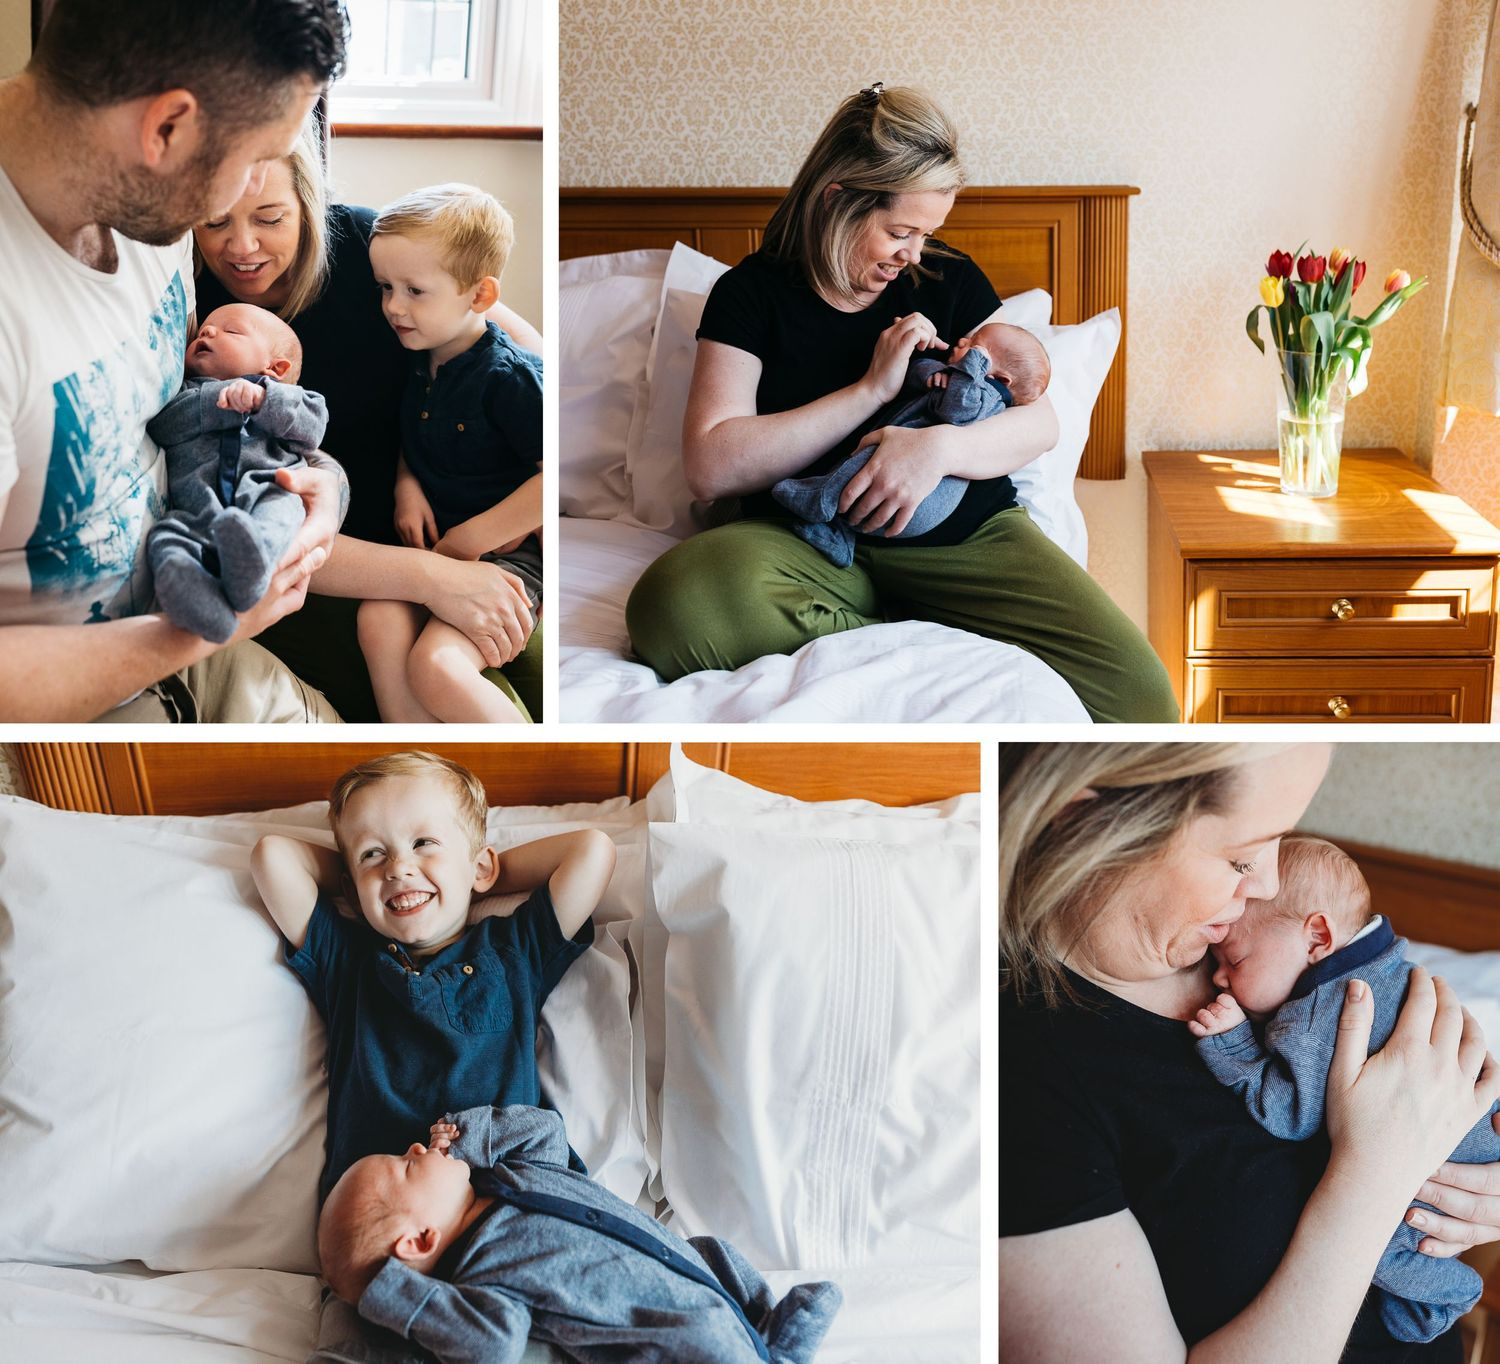 lifestyle family photo shoot at home with two boys